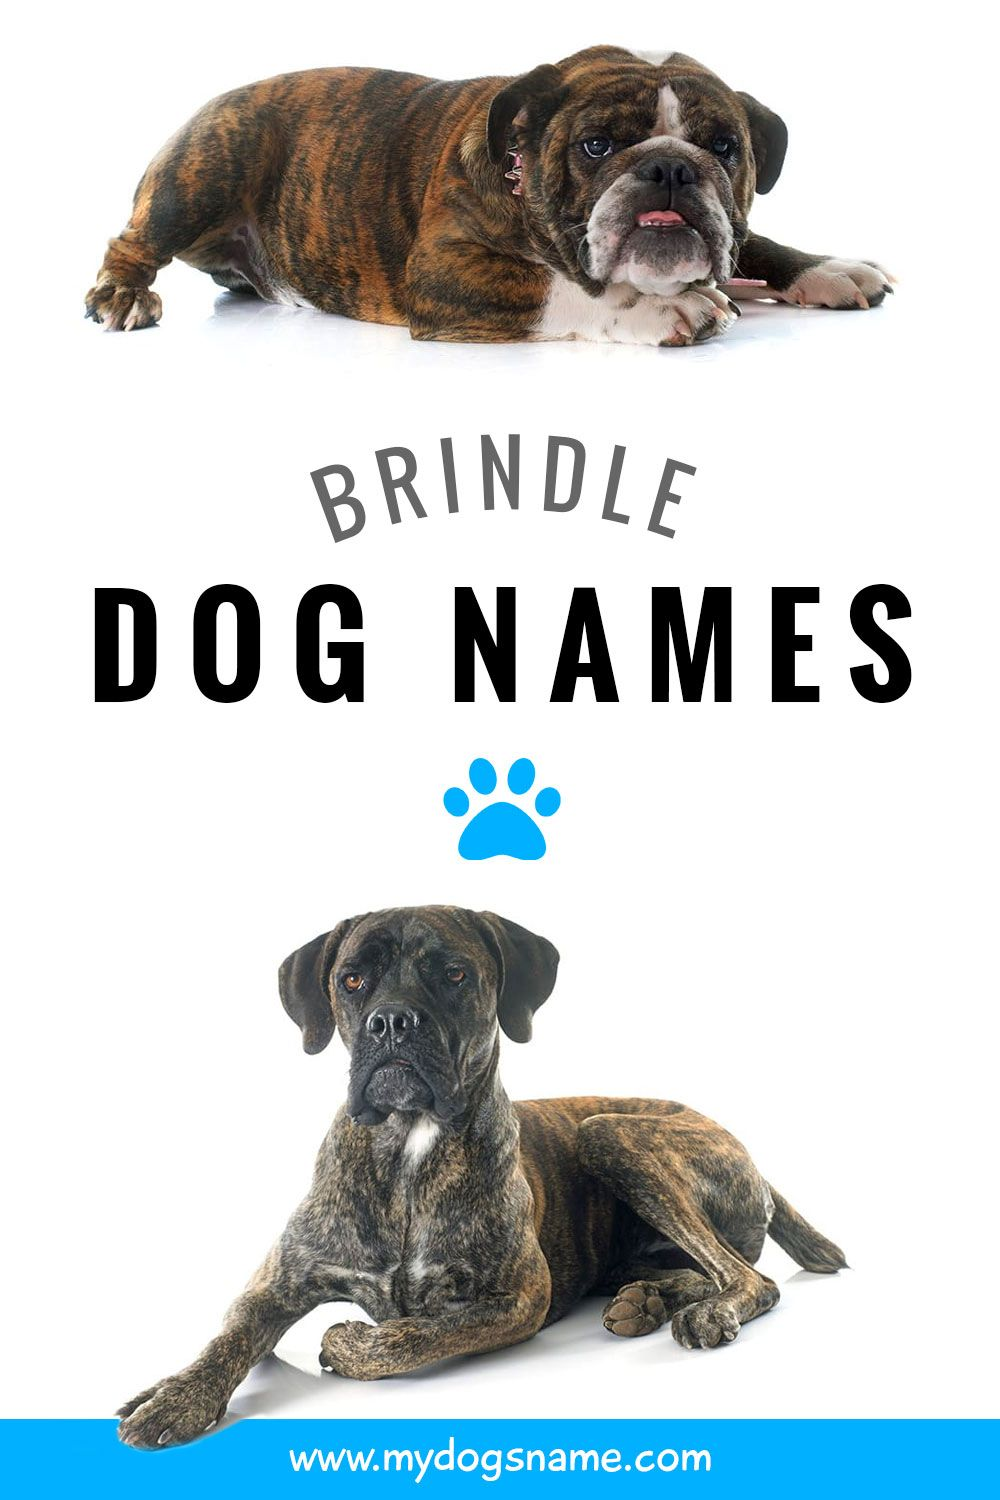 Brindle Dog Names Dog Names Dogs Big Dog Little Dog